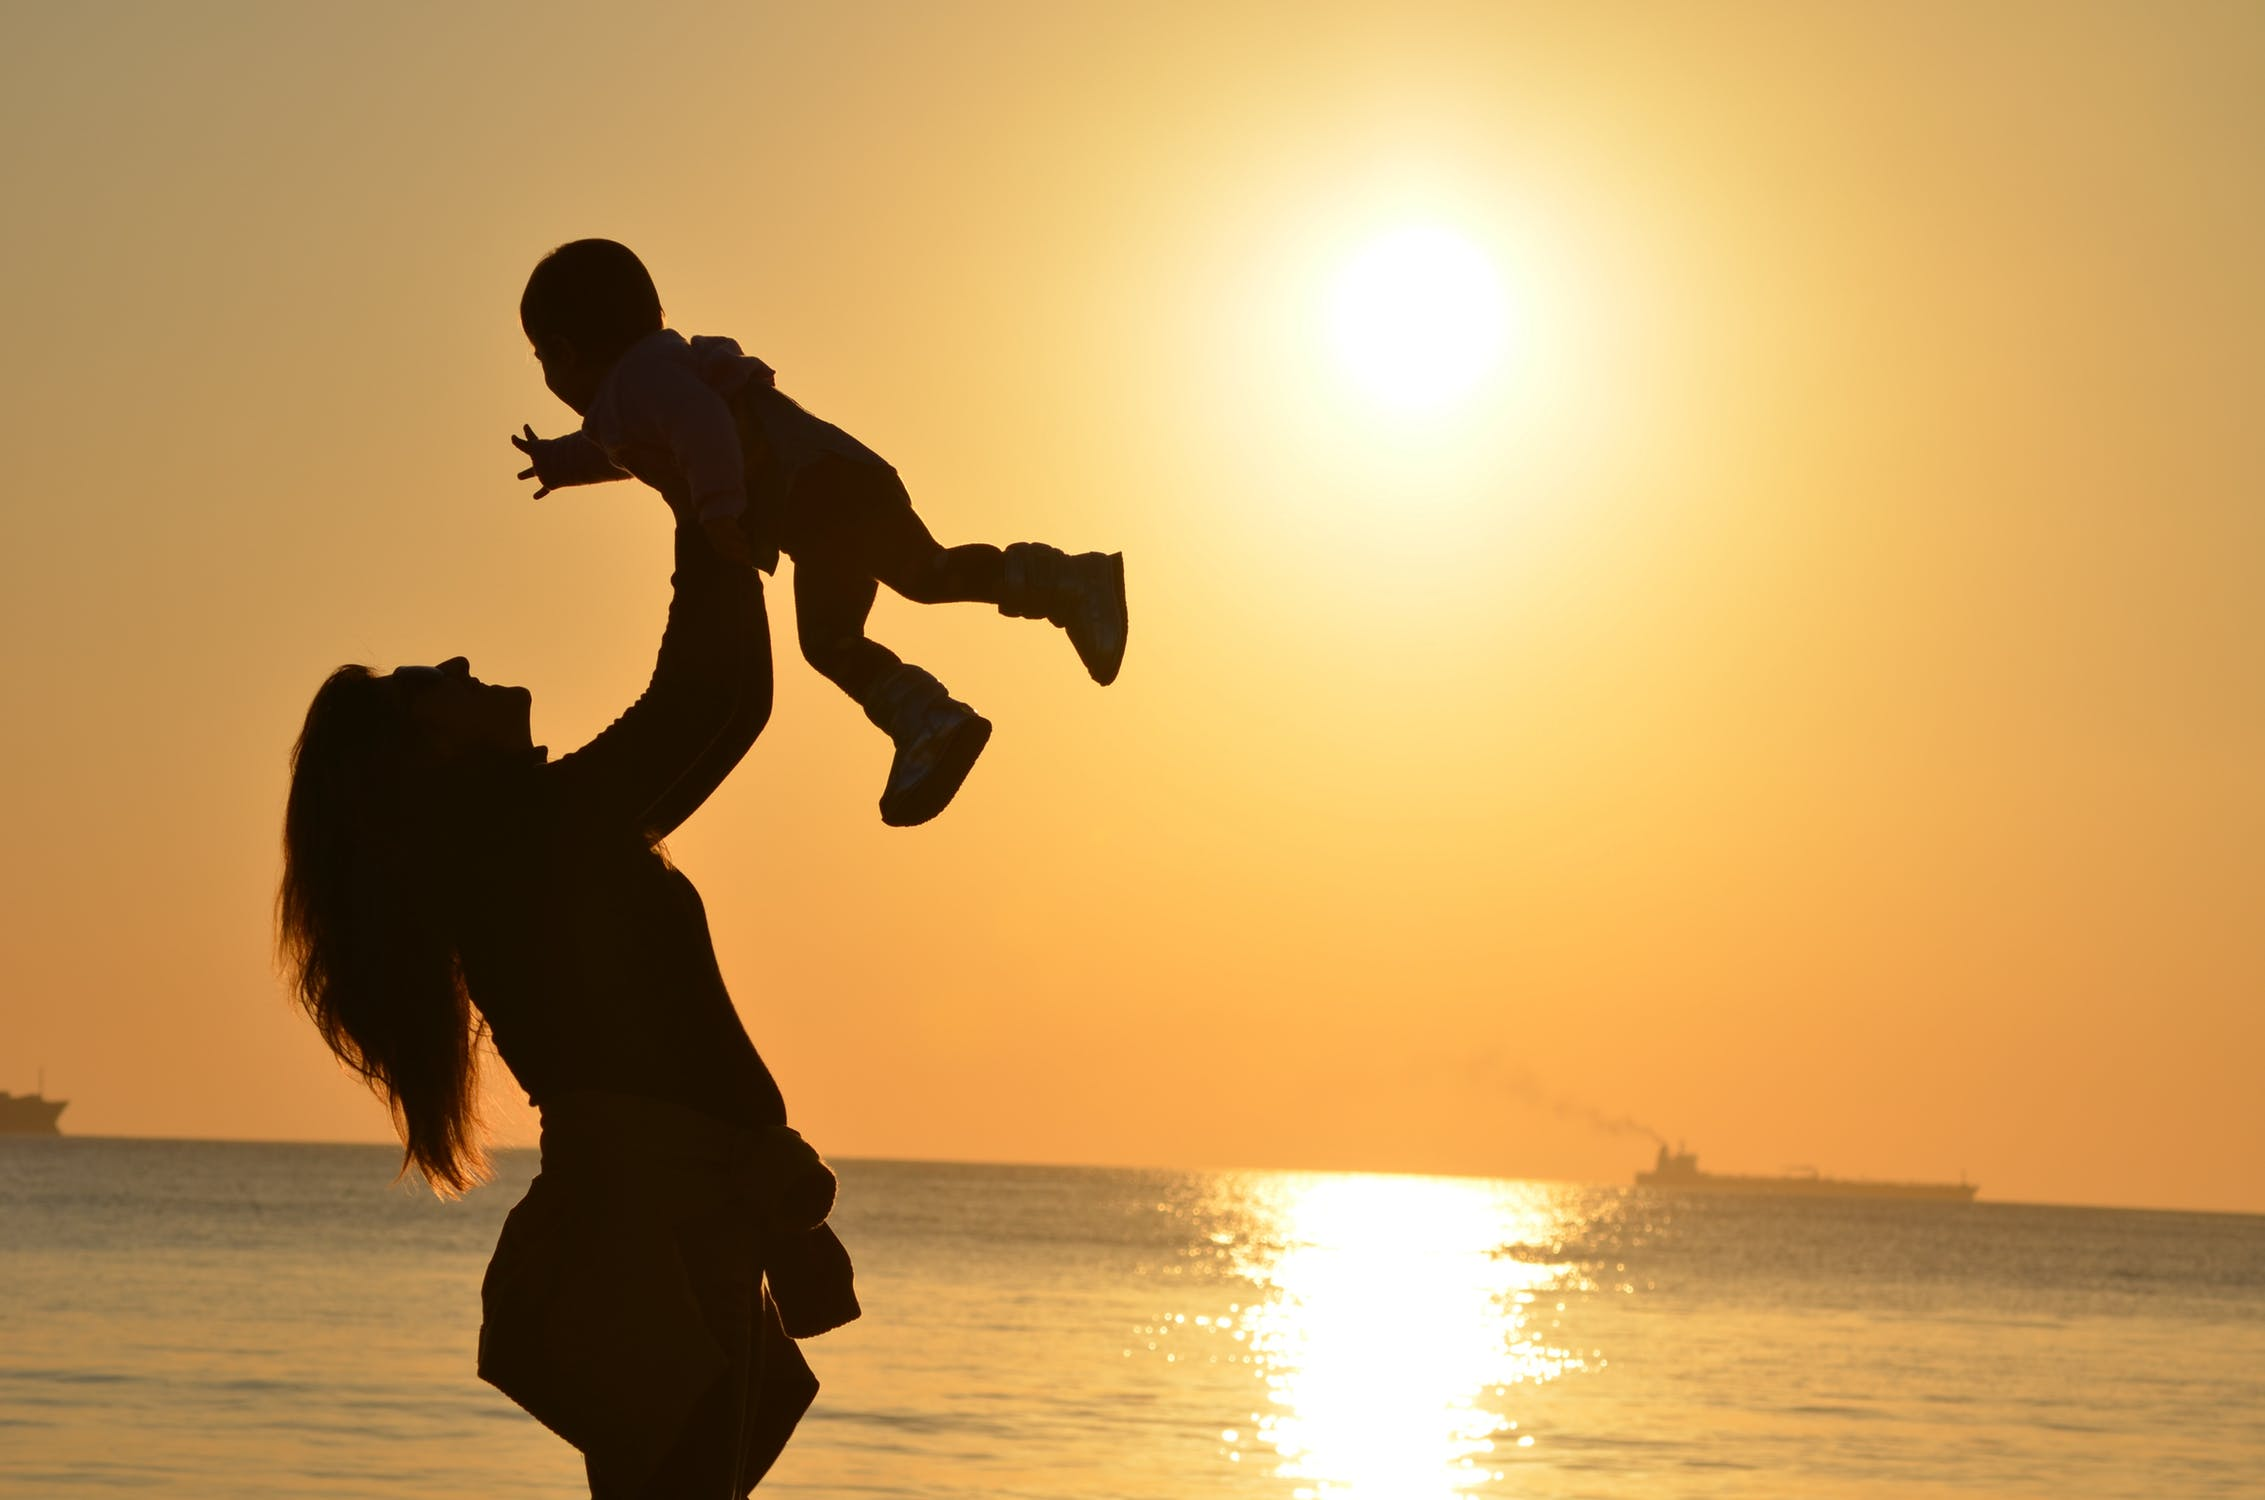 Mother lifting child in joy at the beach at sunset